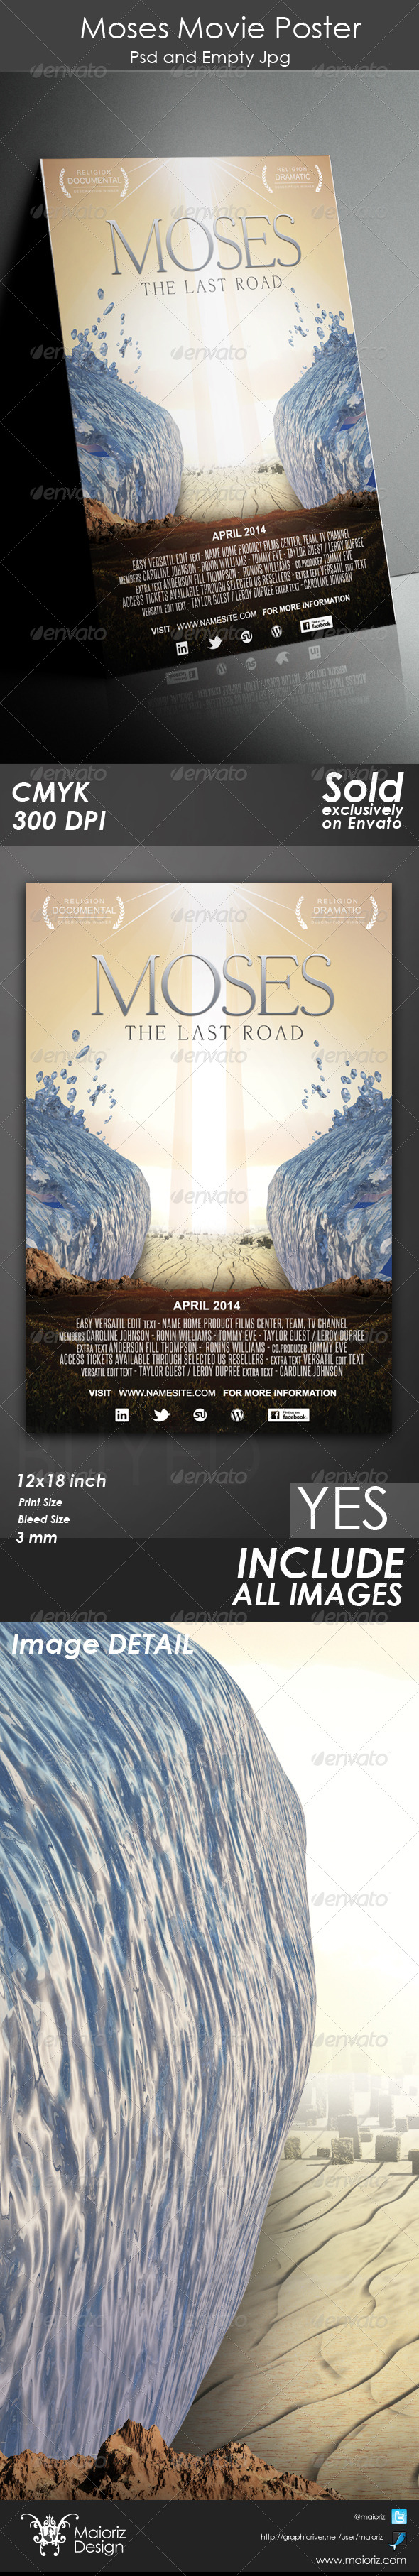 Moses Poster Template - Church Flyers